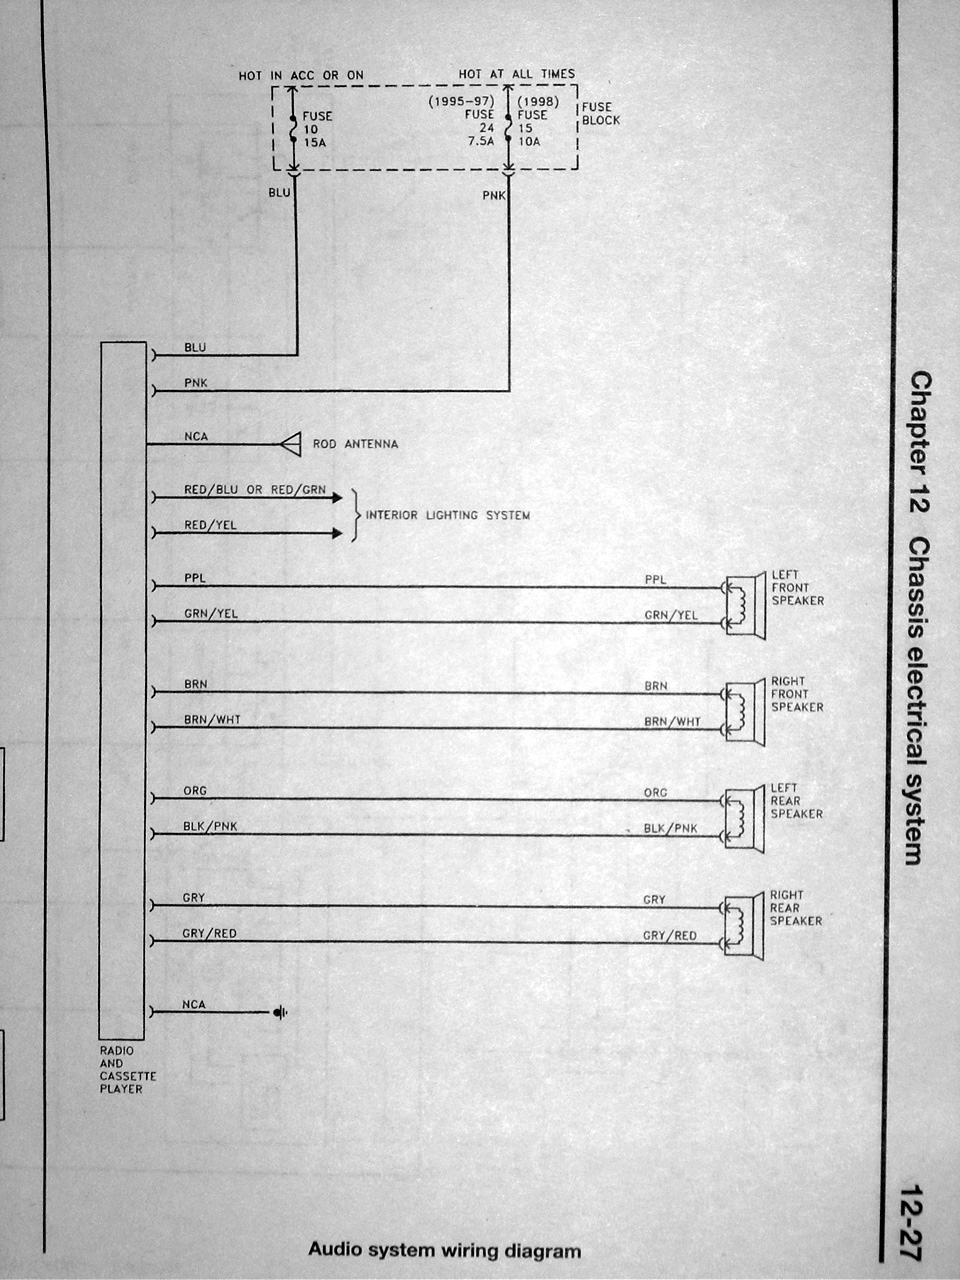 DSC01849 wiring diagram thread *useful info* nissan forum 2000 nissan xterra stereo wiring harness at virtualis.co